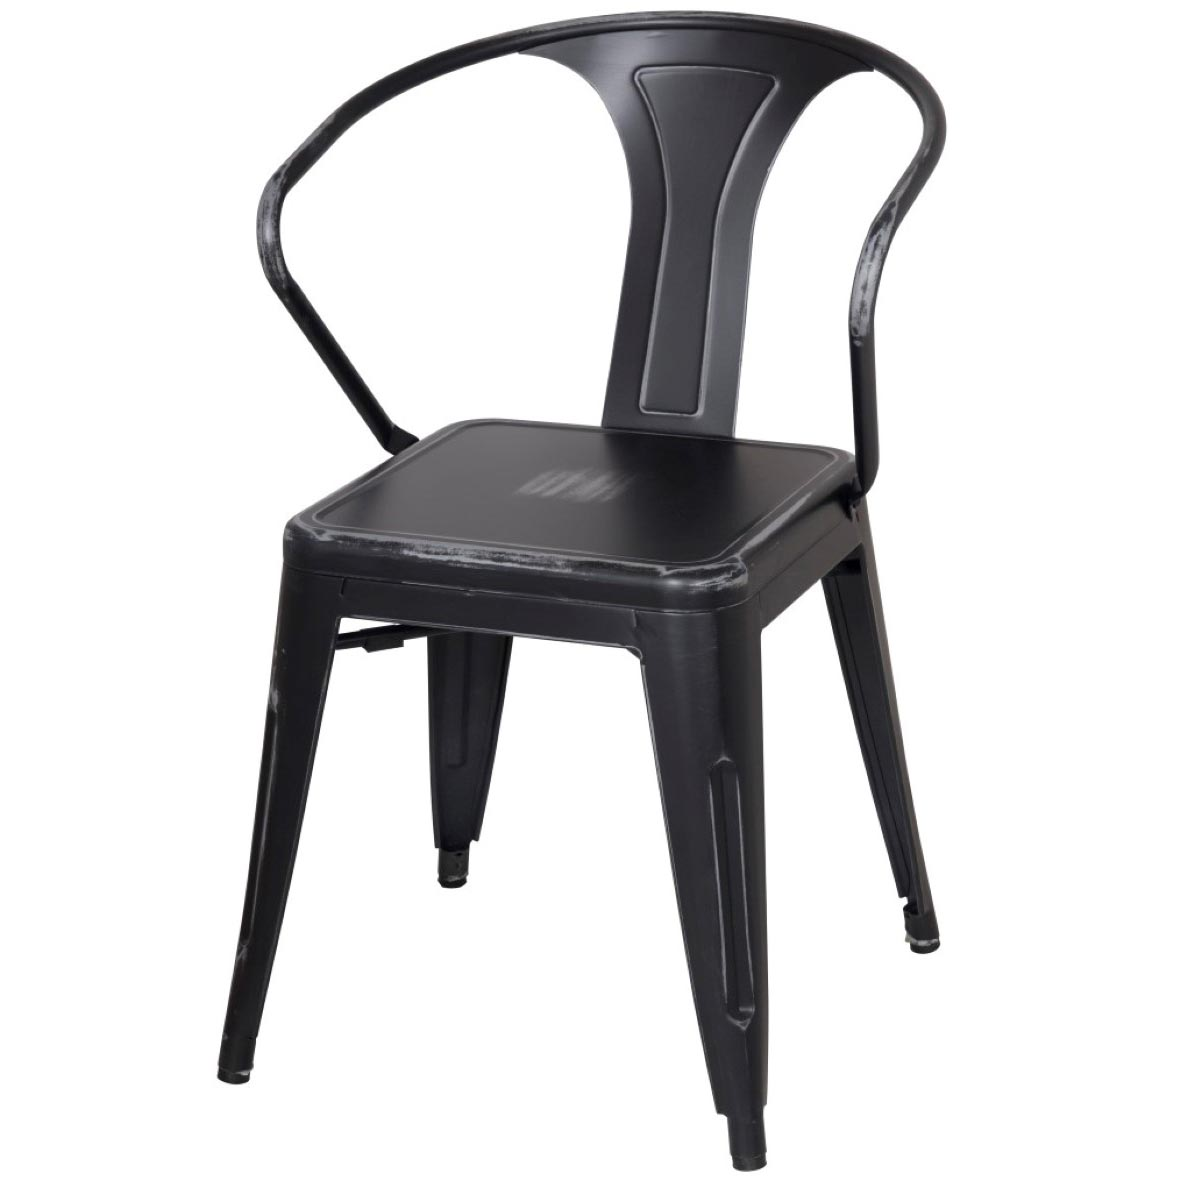 distressed black dining chairs chair cushions metropolis metal arm boulevard urban living